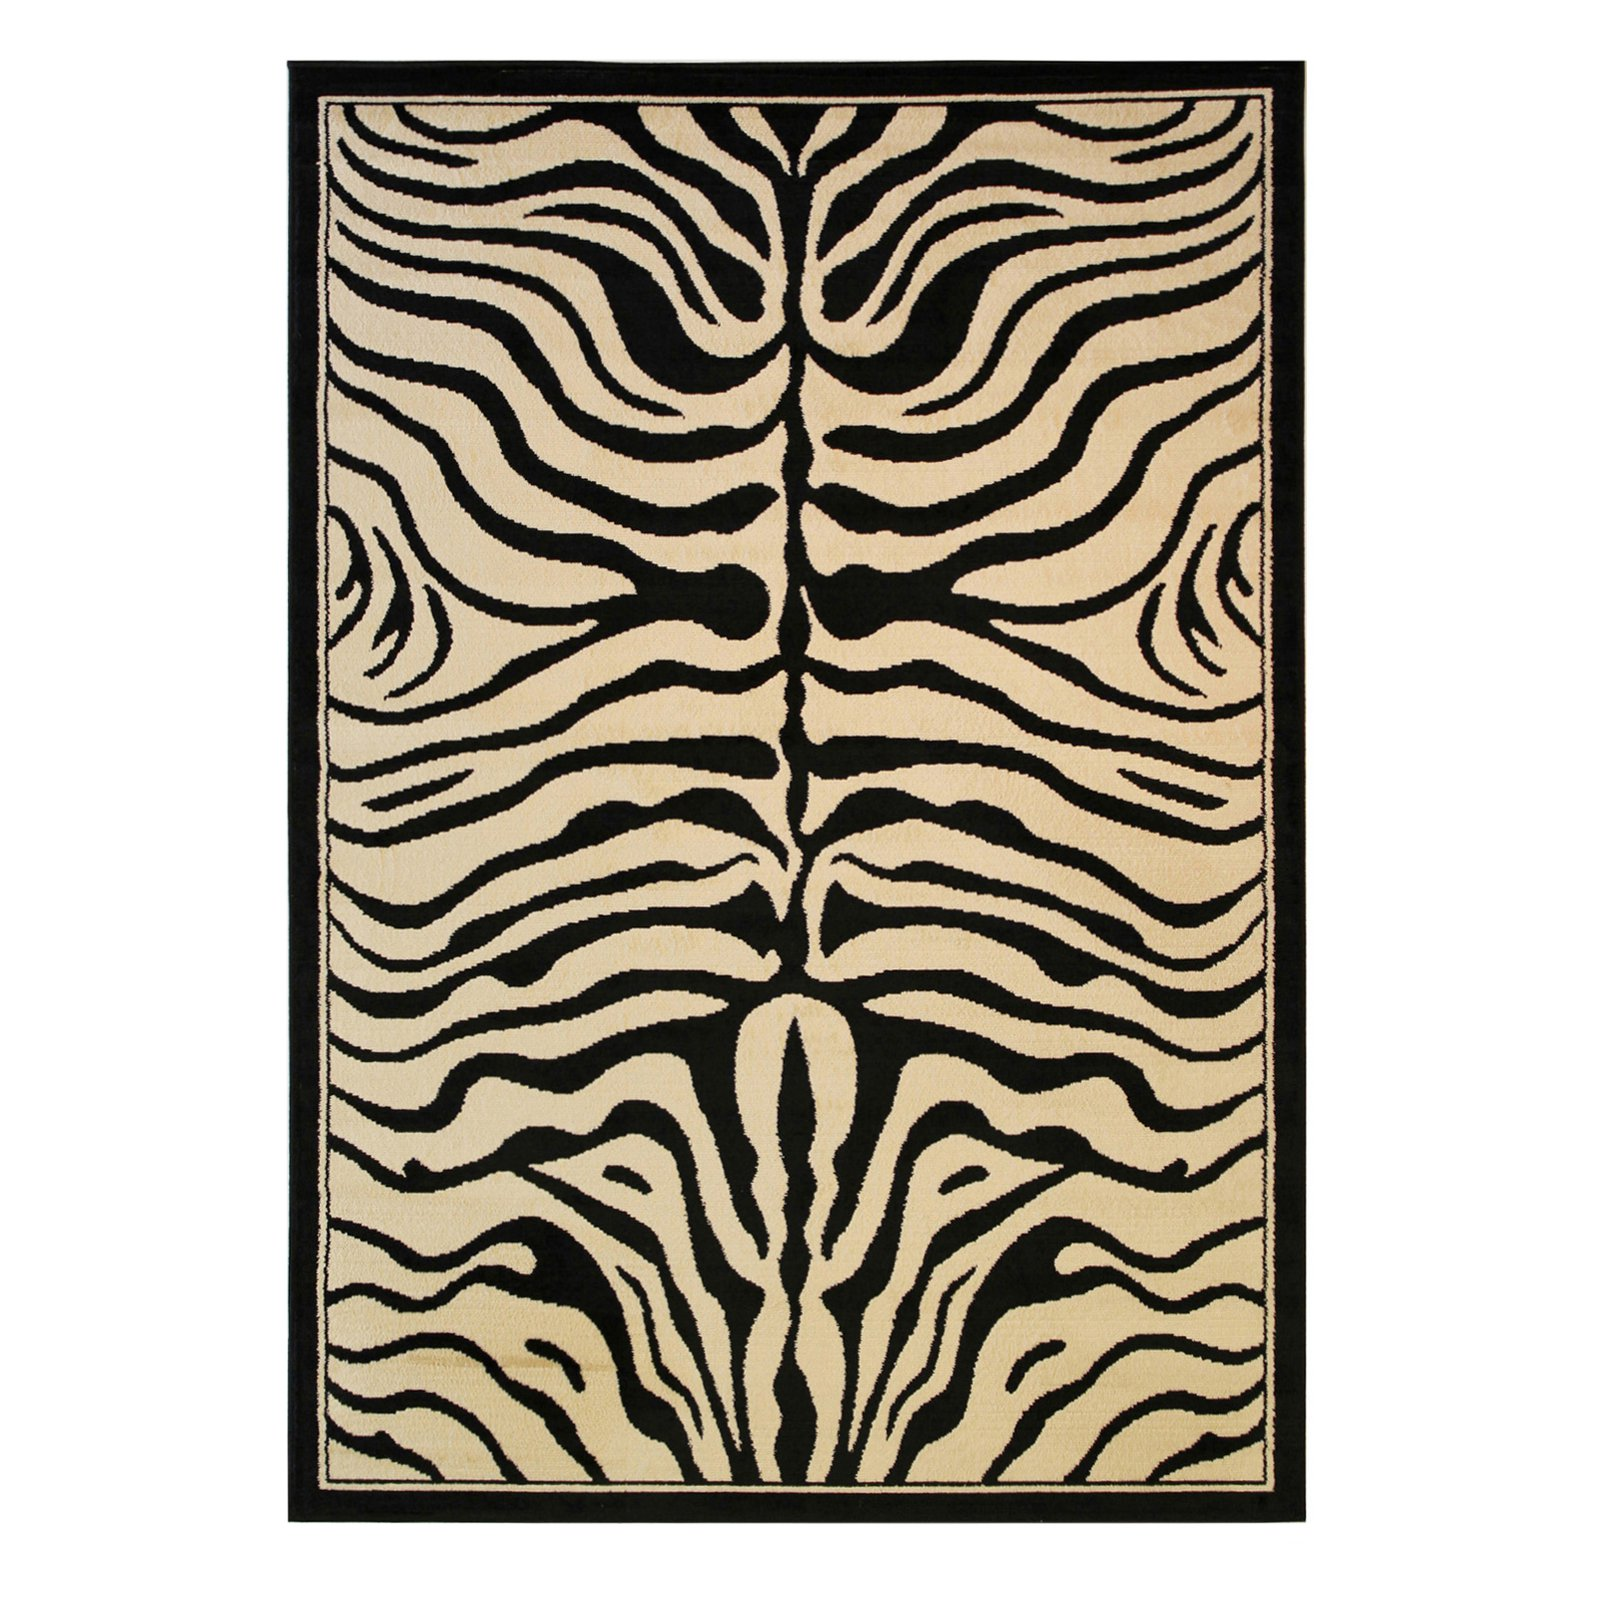 Well Woven Dulcet Zebra Modern Area Rug, Ivory